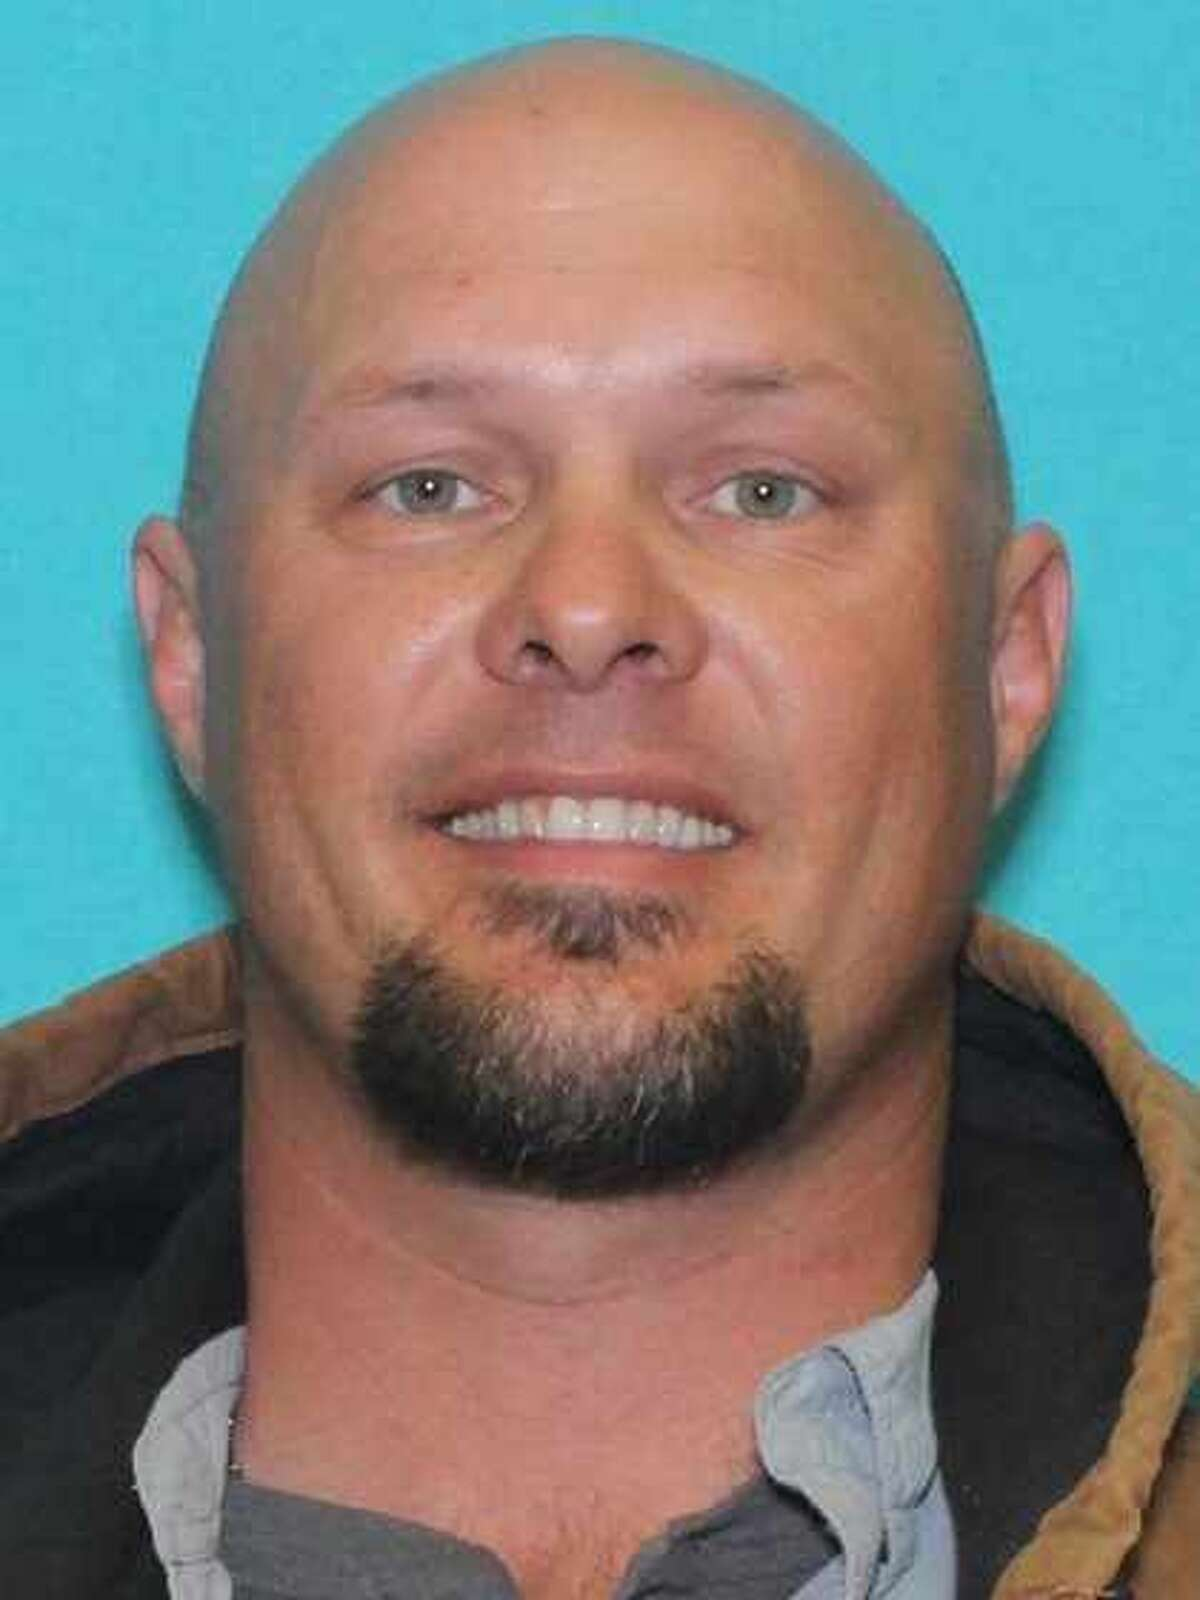 Fugitive of the Week: Justin Savage is wanted on a sexual Assault - Grand Jury Indictment warrant.